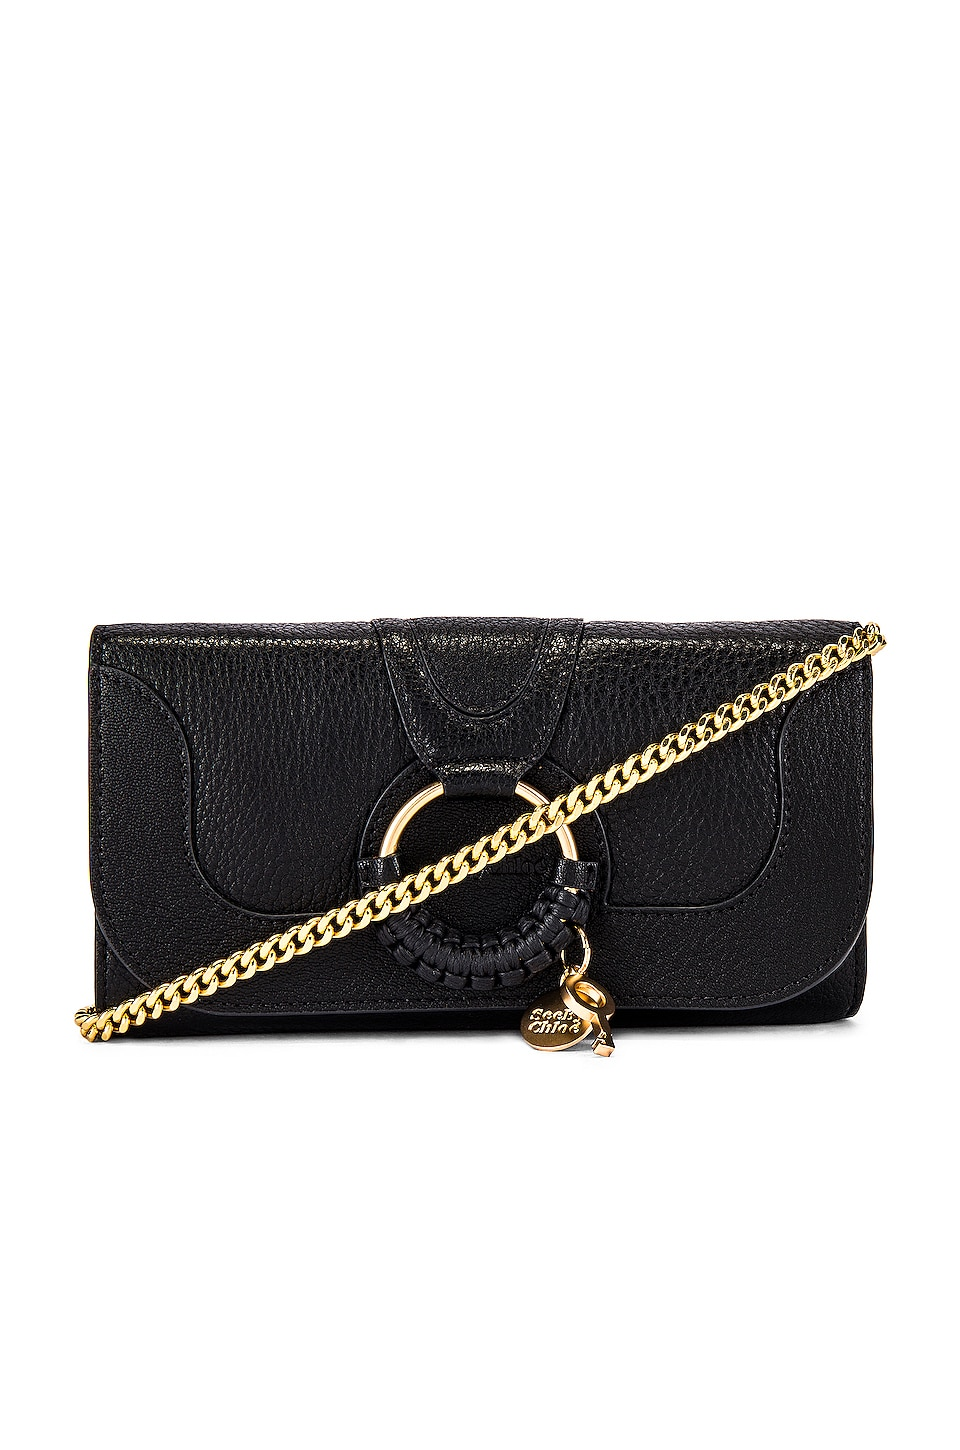 See By Chloe Hana Small Leather Wallet On A Chain Bag in Black